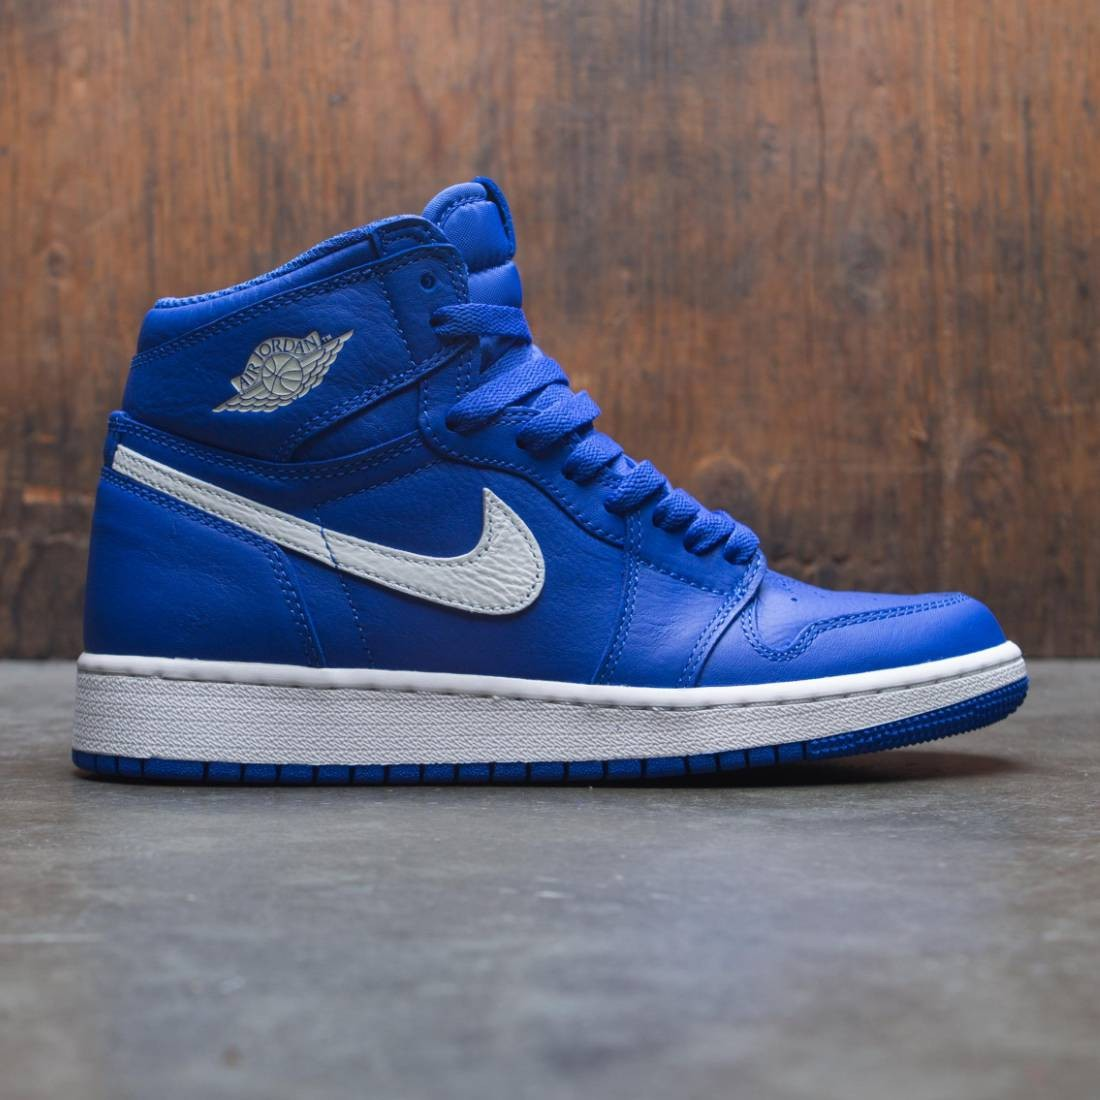 6a22ae77870 jordan big kids air jordan 1 retro high og bg hyper royal sail